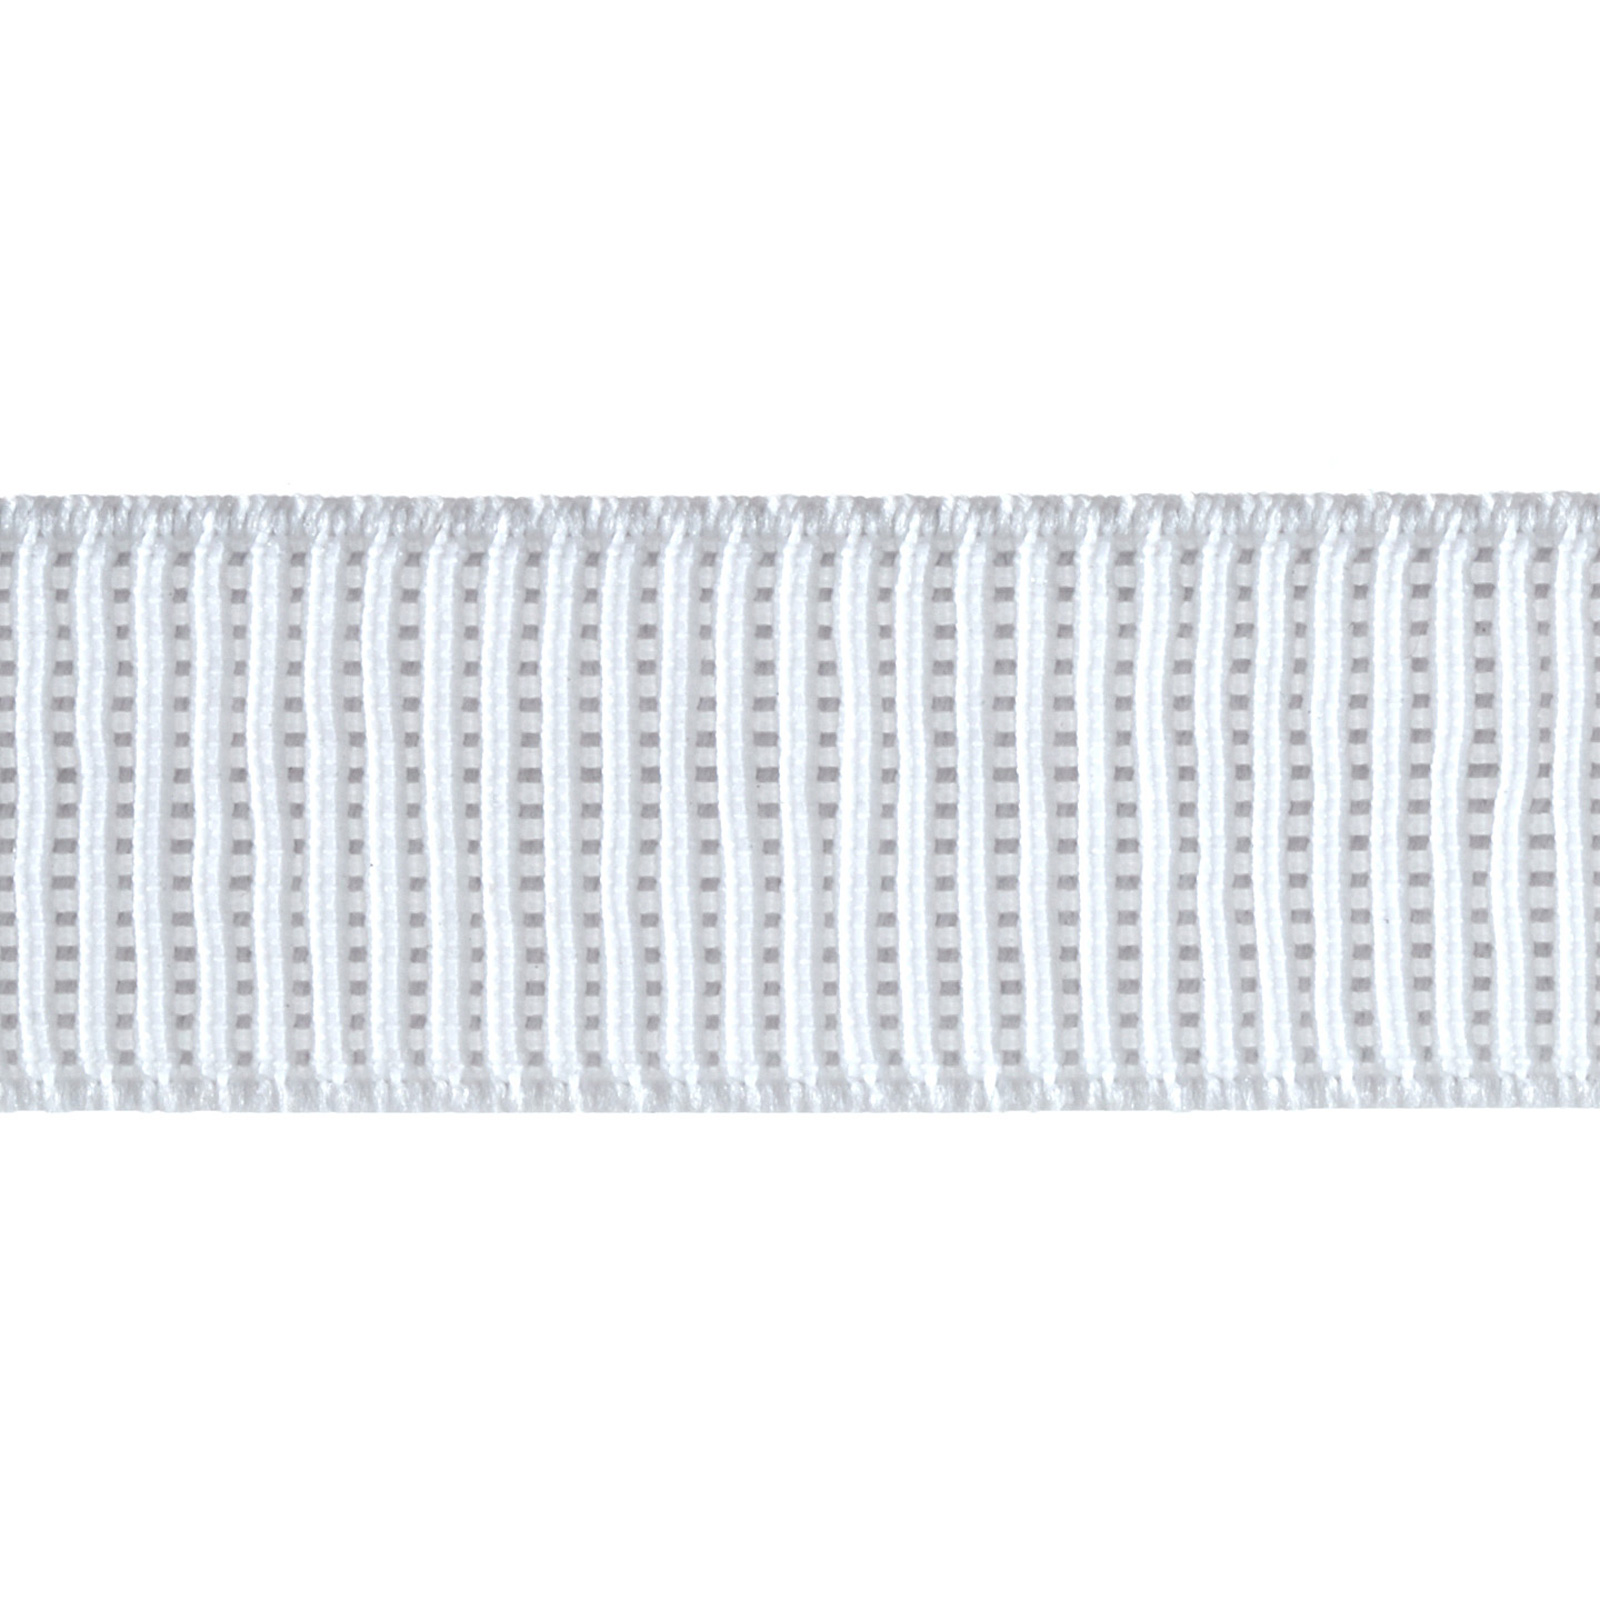 1'' Non-Roll Ribbed Elastic White 0310513